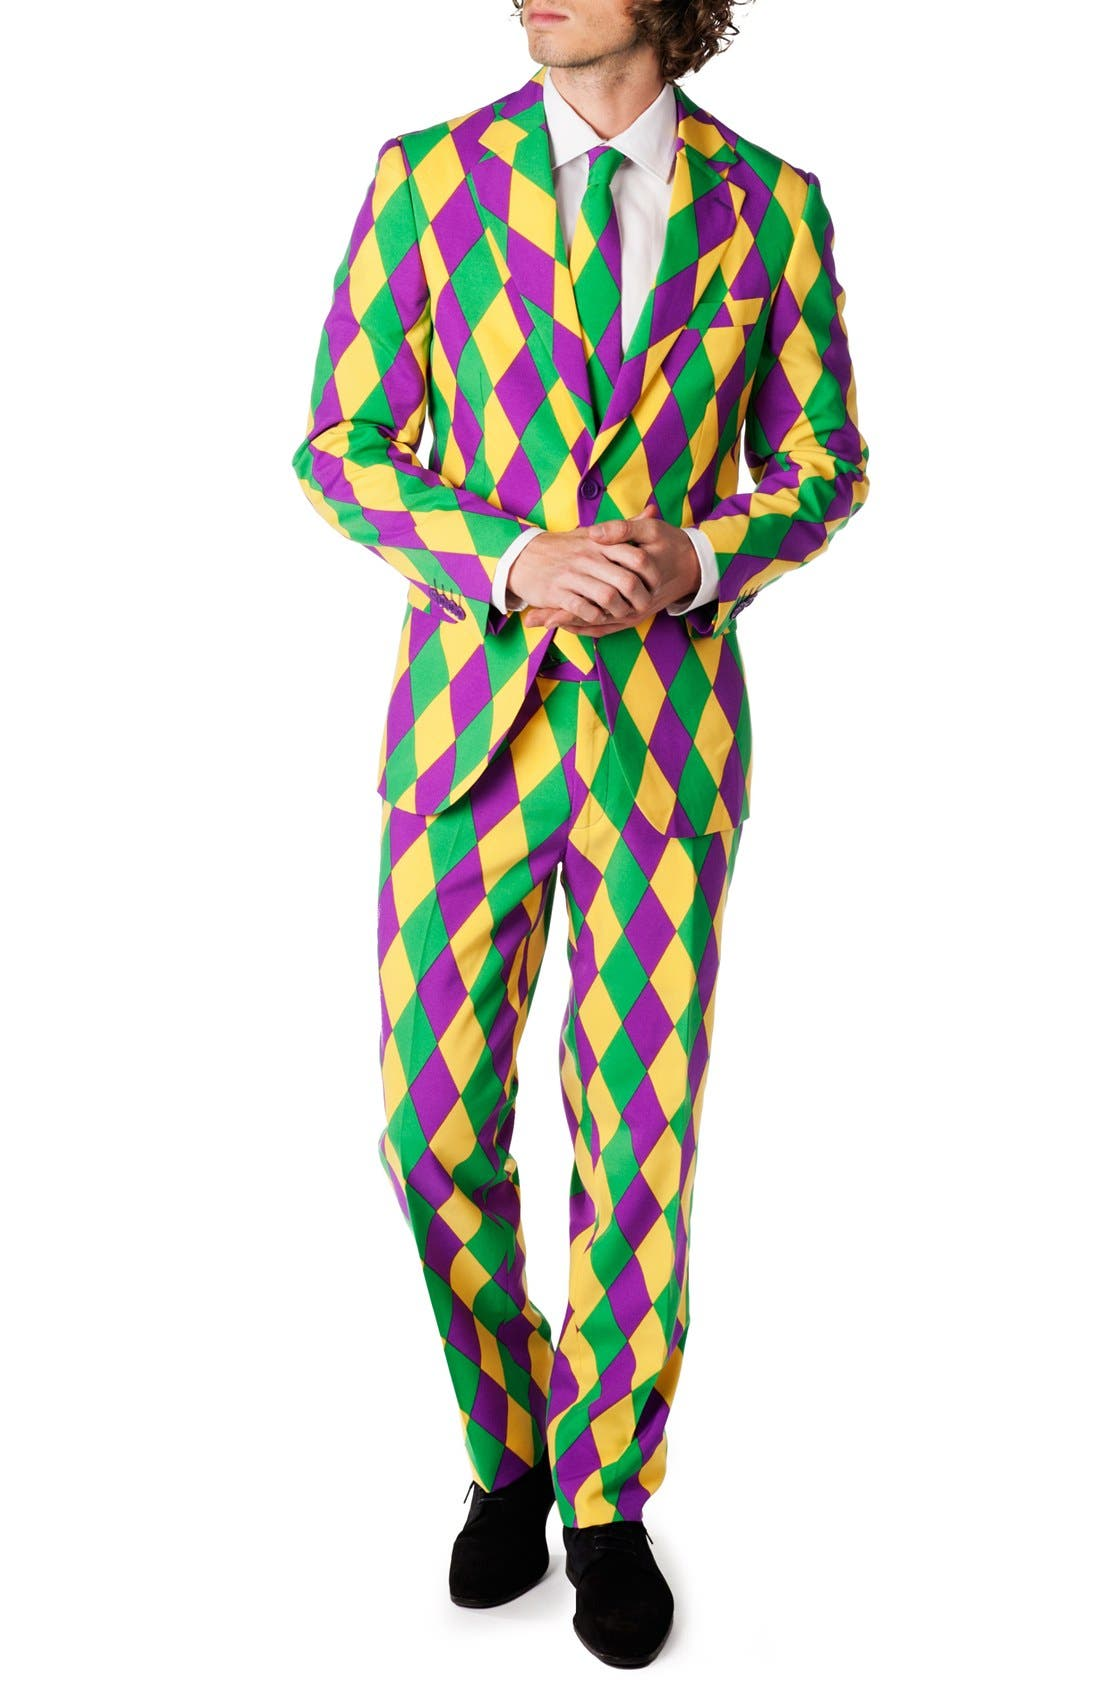 'Harleking' Trim Fit Suit with Tie,                         Main,                         color, Green/ Purple/ Yellow